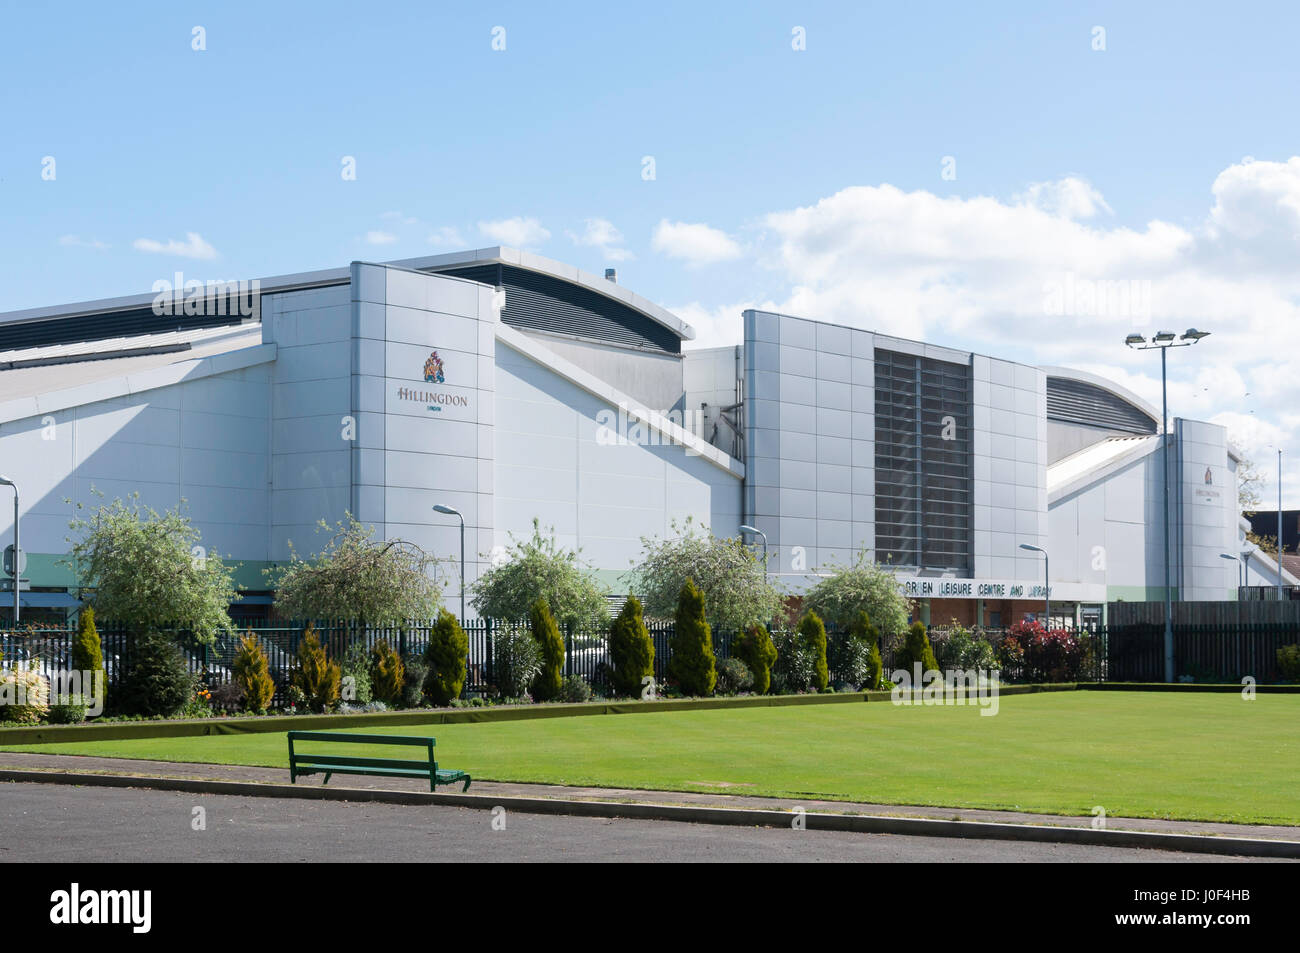 Botwell Green Sports & Leisure Club, East Avenue, Hayes, London Borough of Hillingdon, Greater London, England, - Stock Image